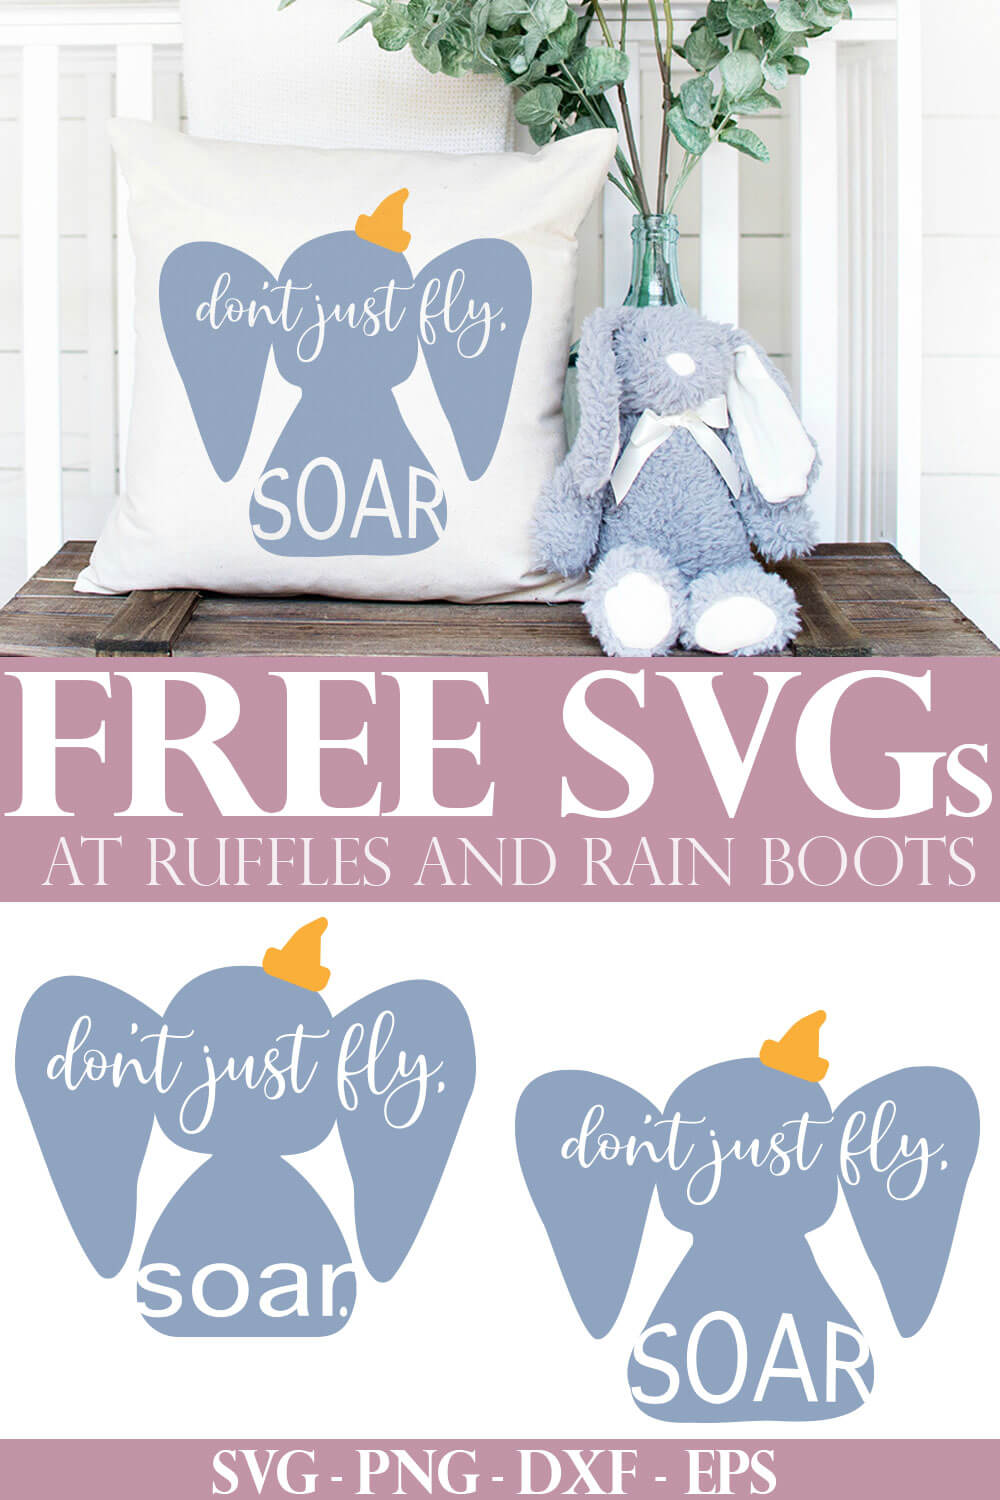 collage of pillow featuring Dumbo silhouette SVG with dont just fly soar quote with text which reads free SVG at Ruffles and Rain Boots